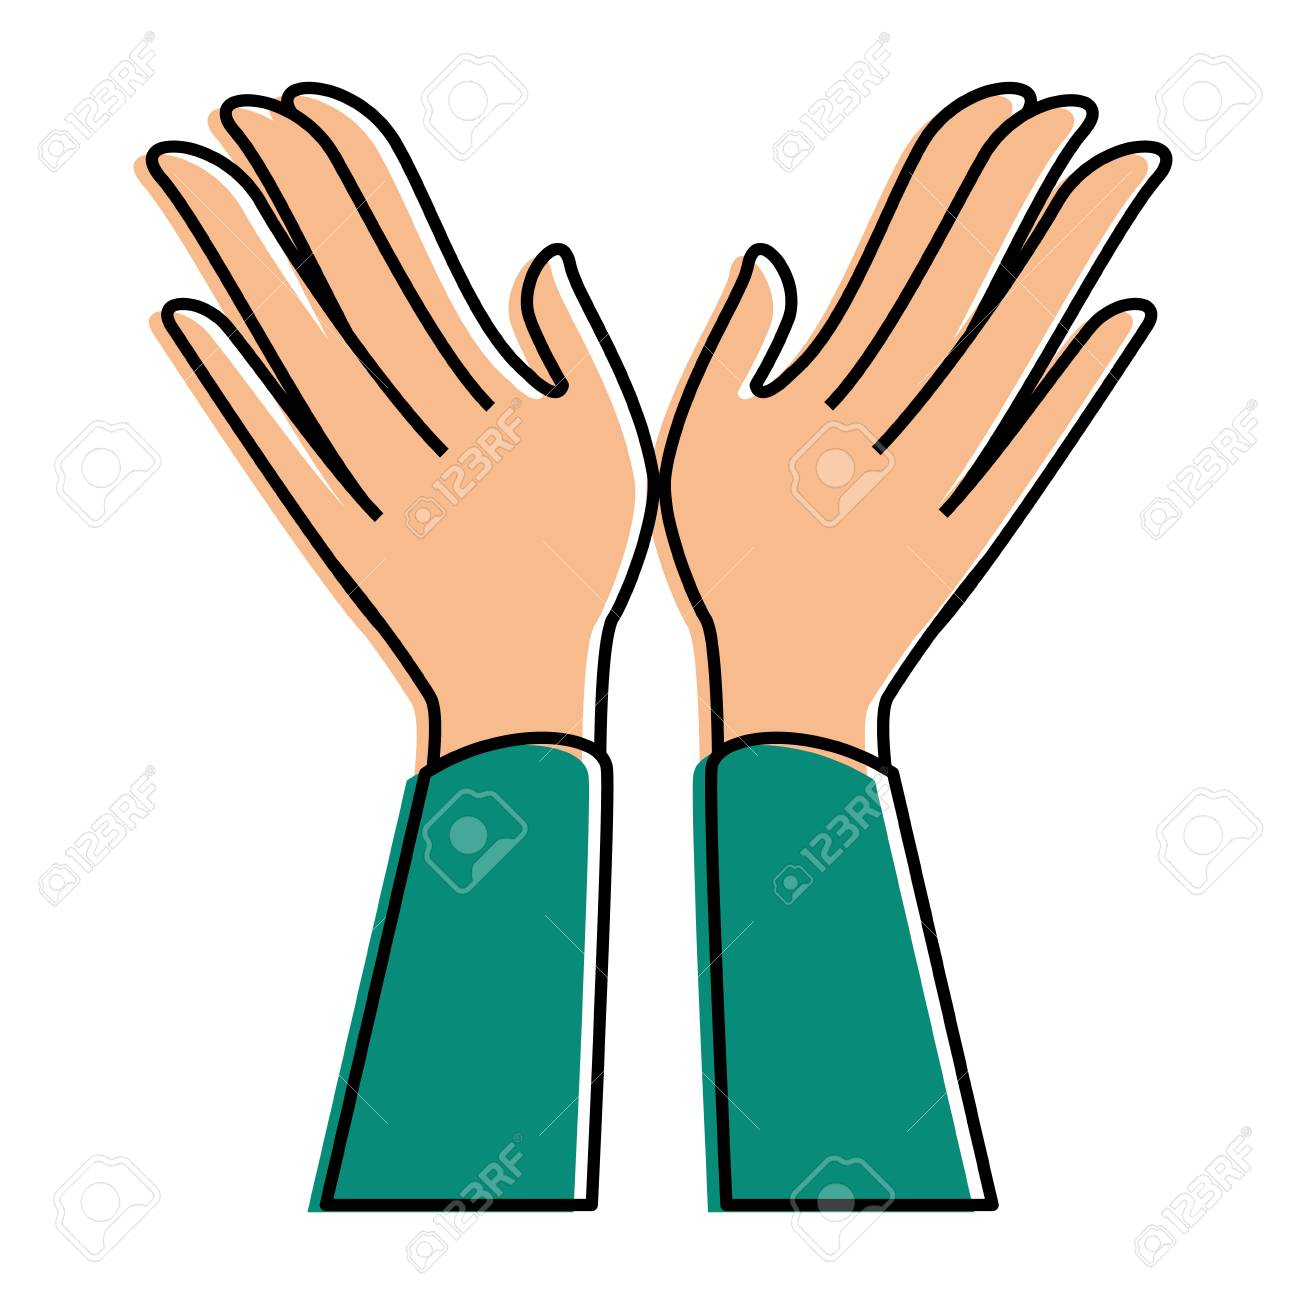 hands applauding isolated icon vector illustration design - 90472543